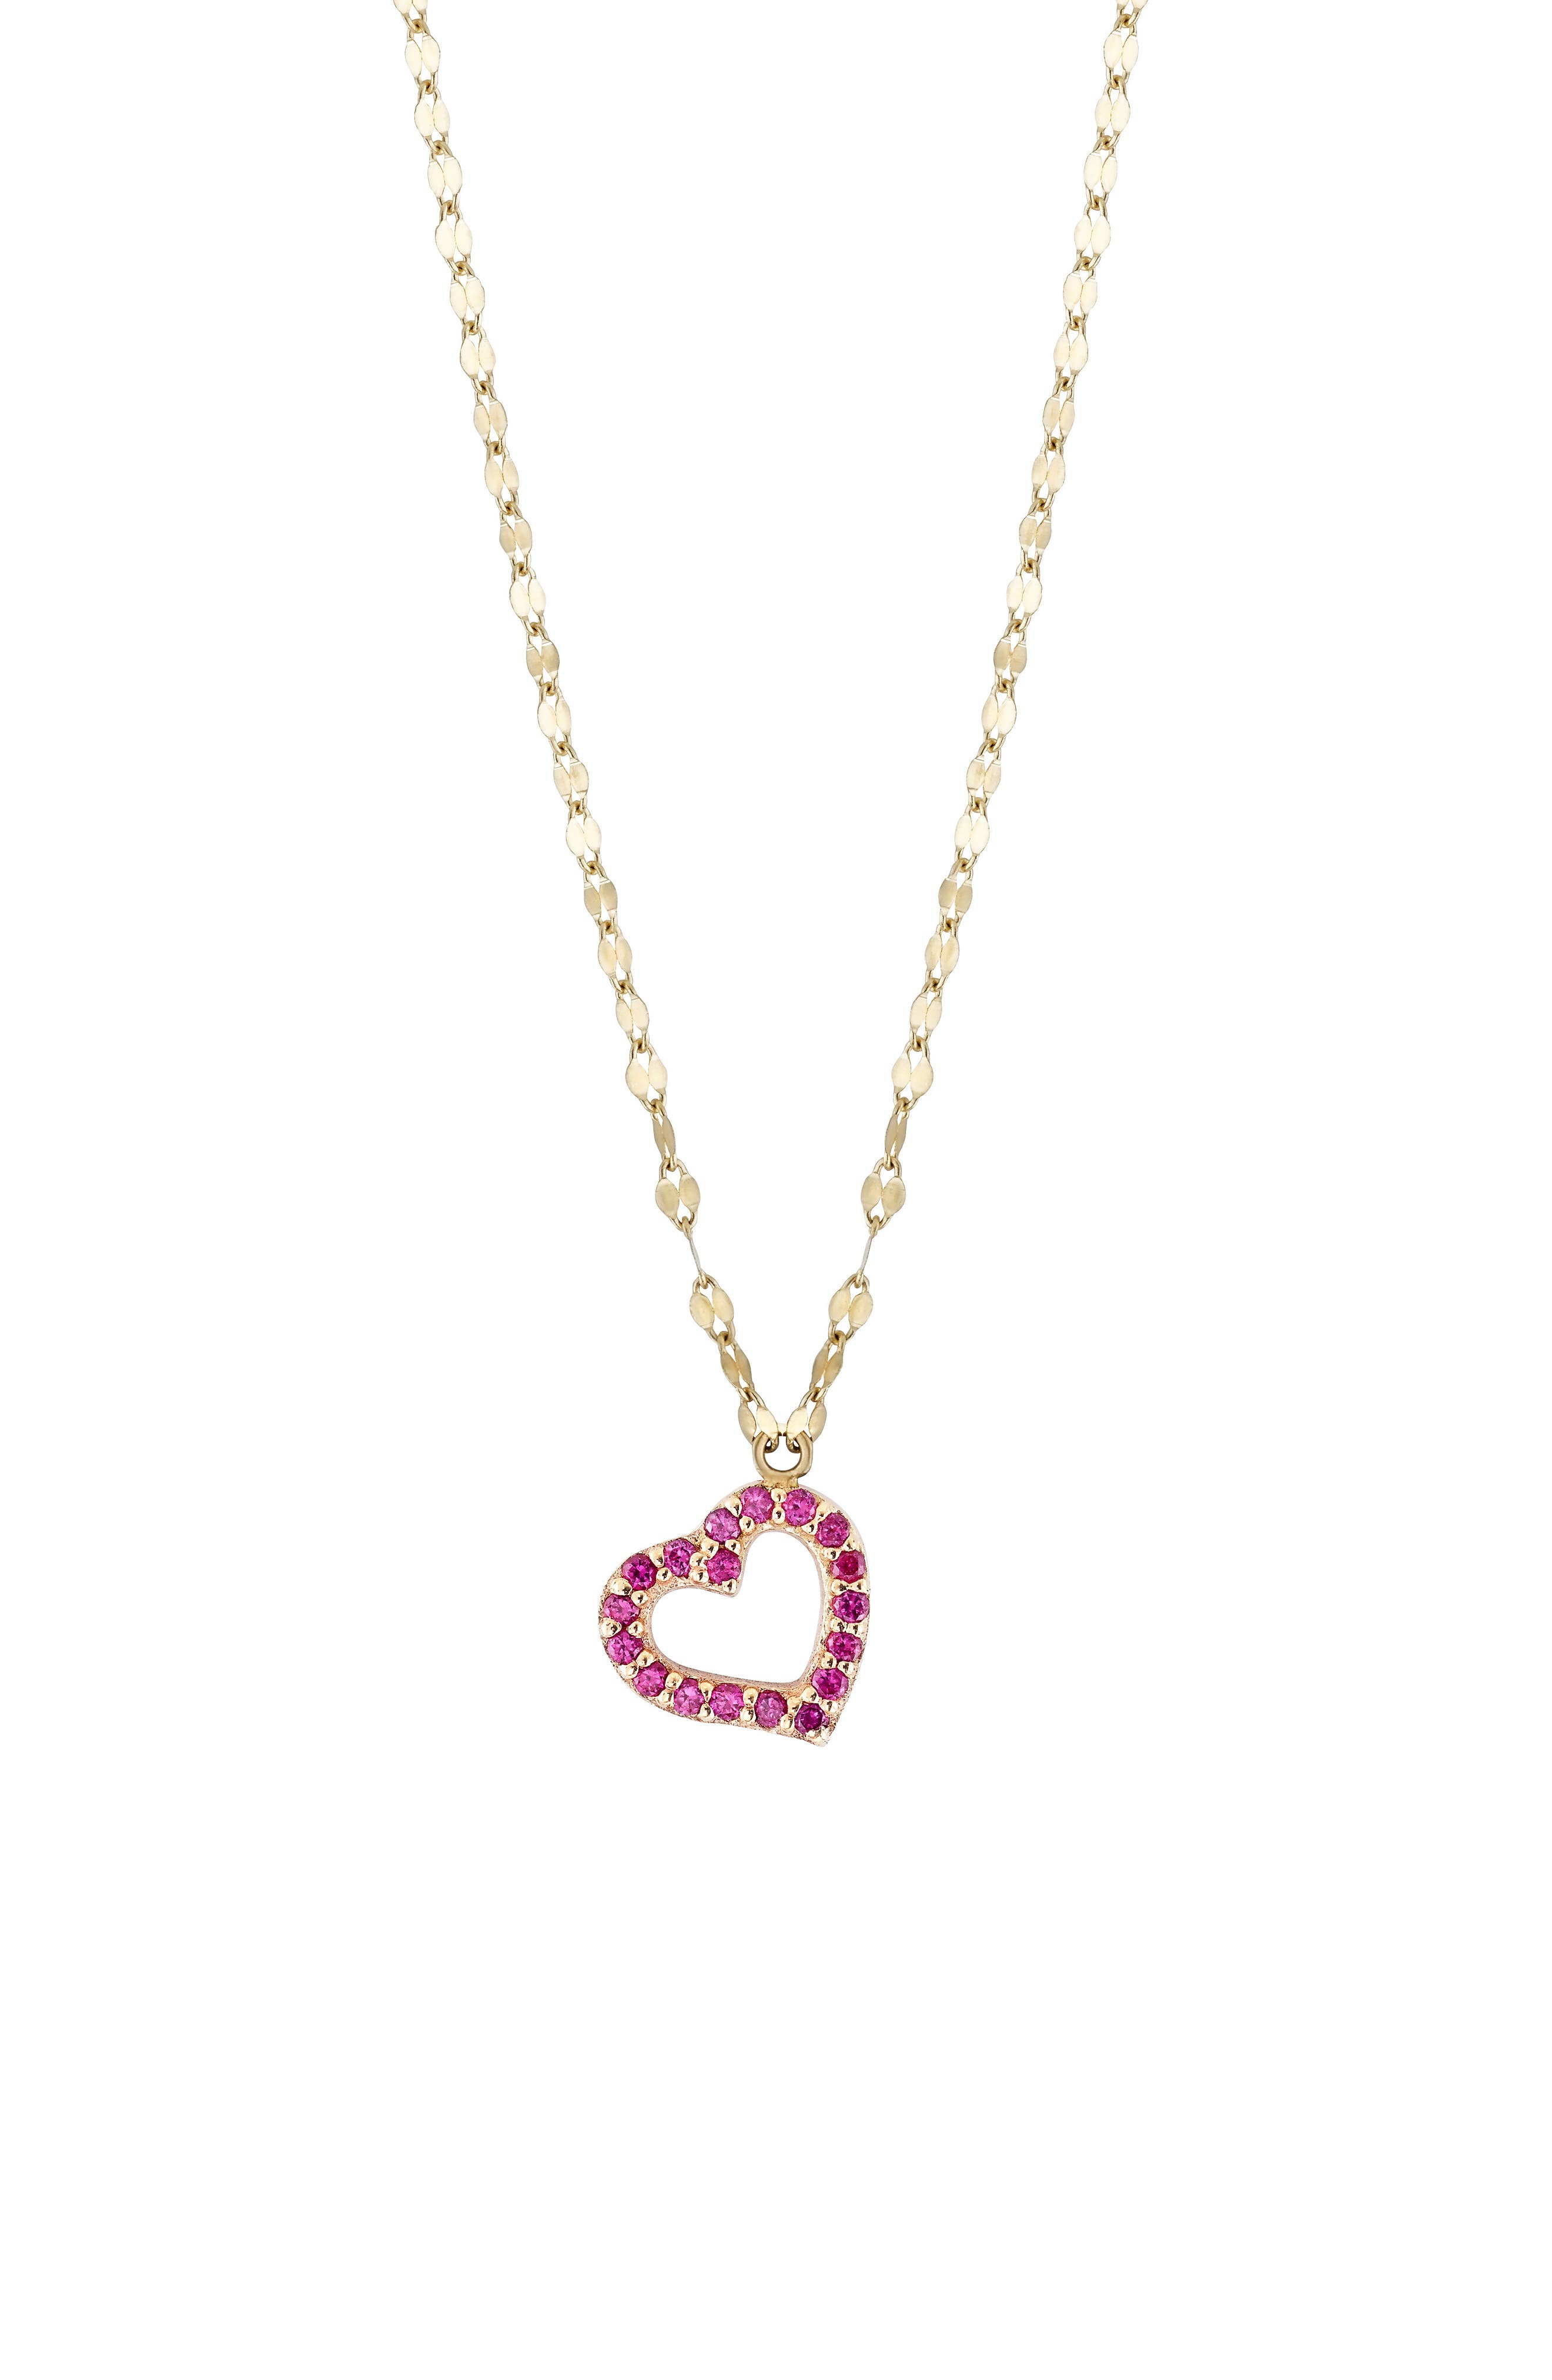 Girls\' Necklaces Jewelry: Bracelets, Charms & Necklaces   Nordstrom